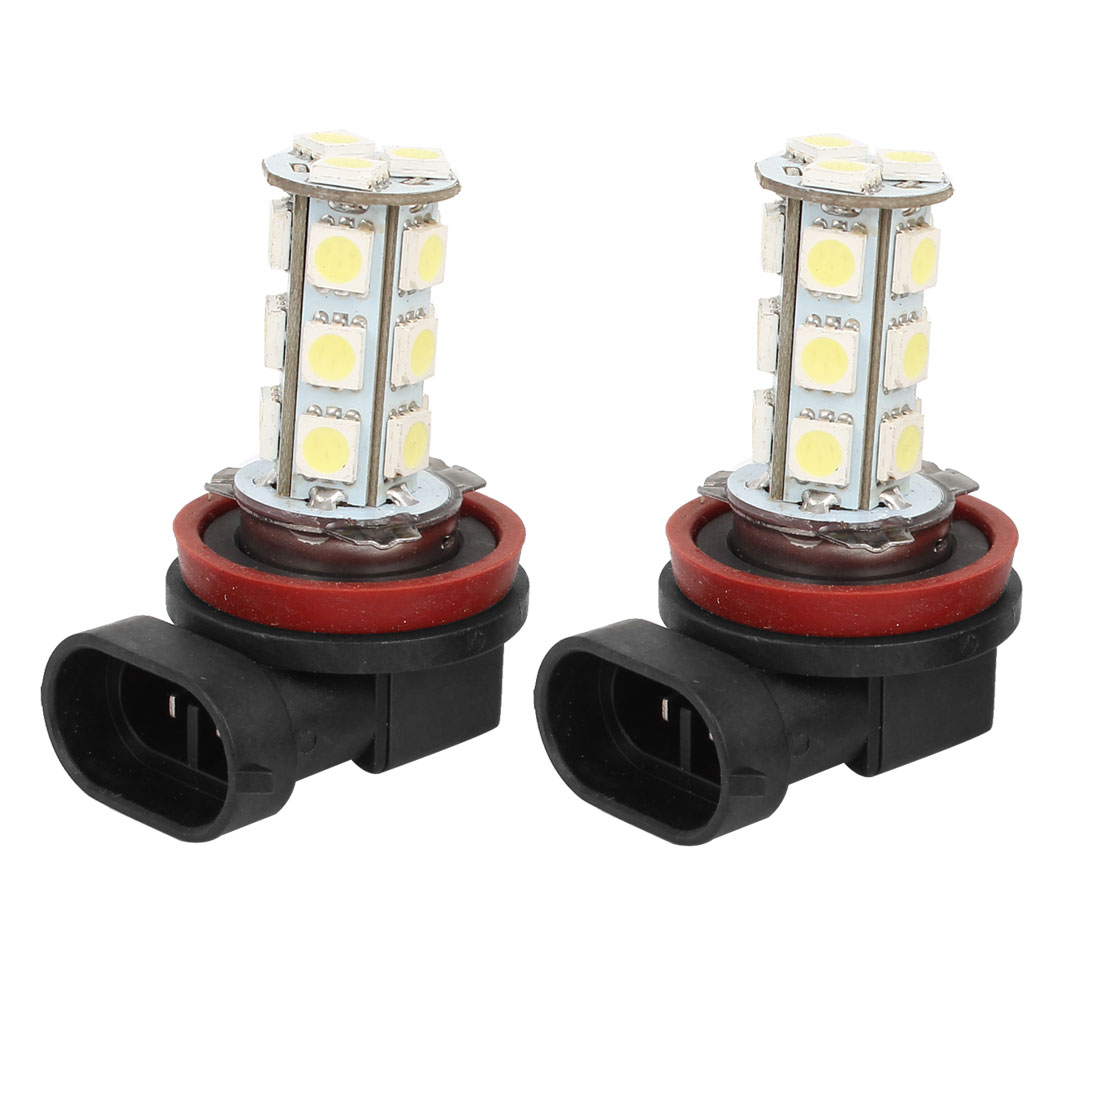 Car White H11 18 LED 5050 SMD Bulbs Fog Headlight Light Lamp 2 Pcs